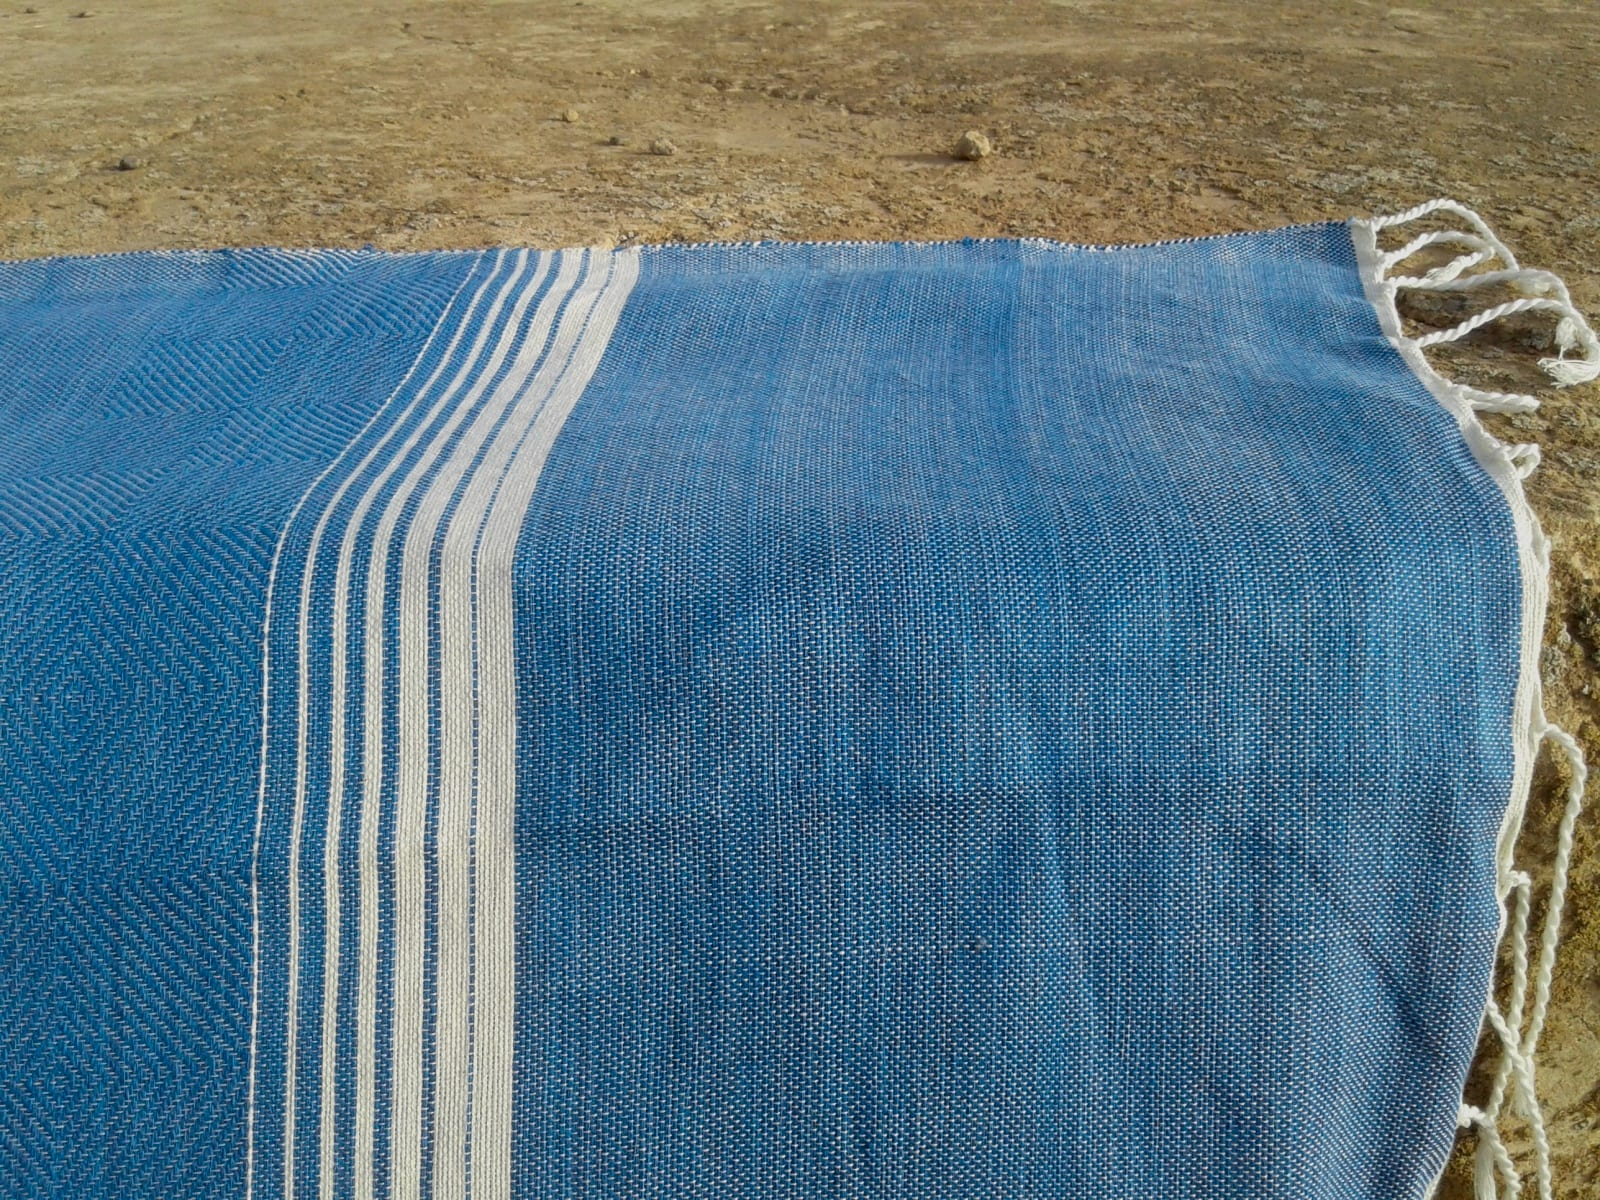 Towel Cotton Thread Blue, White Morocco